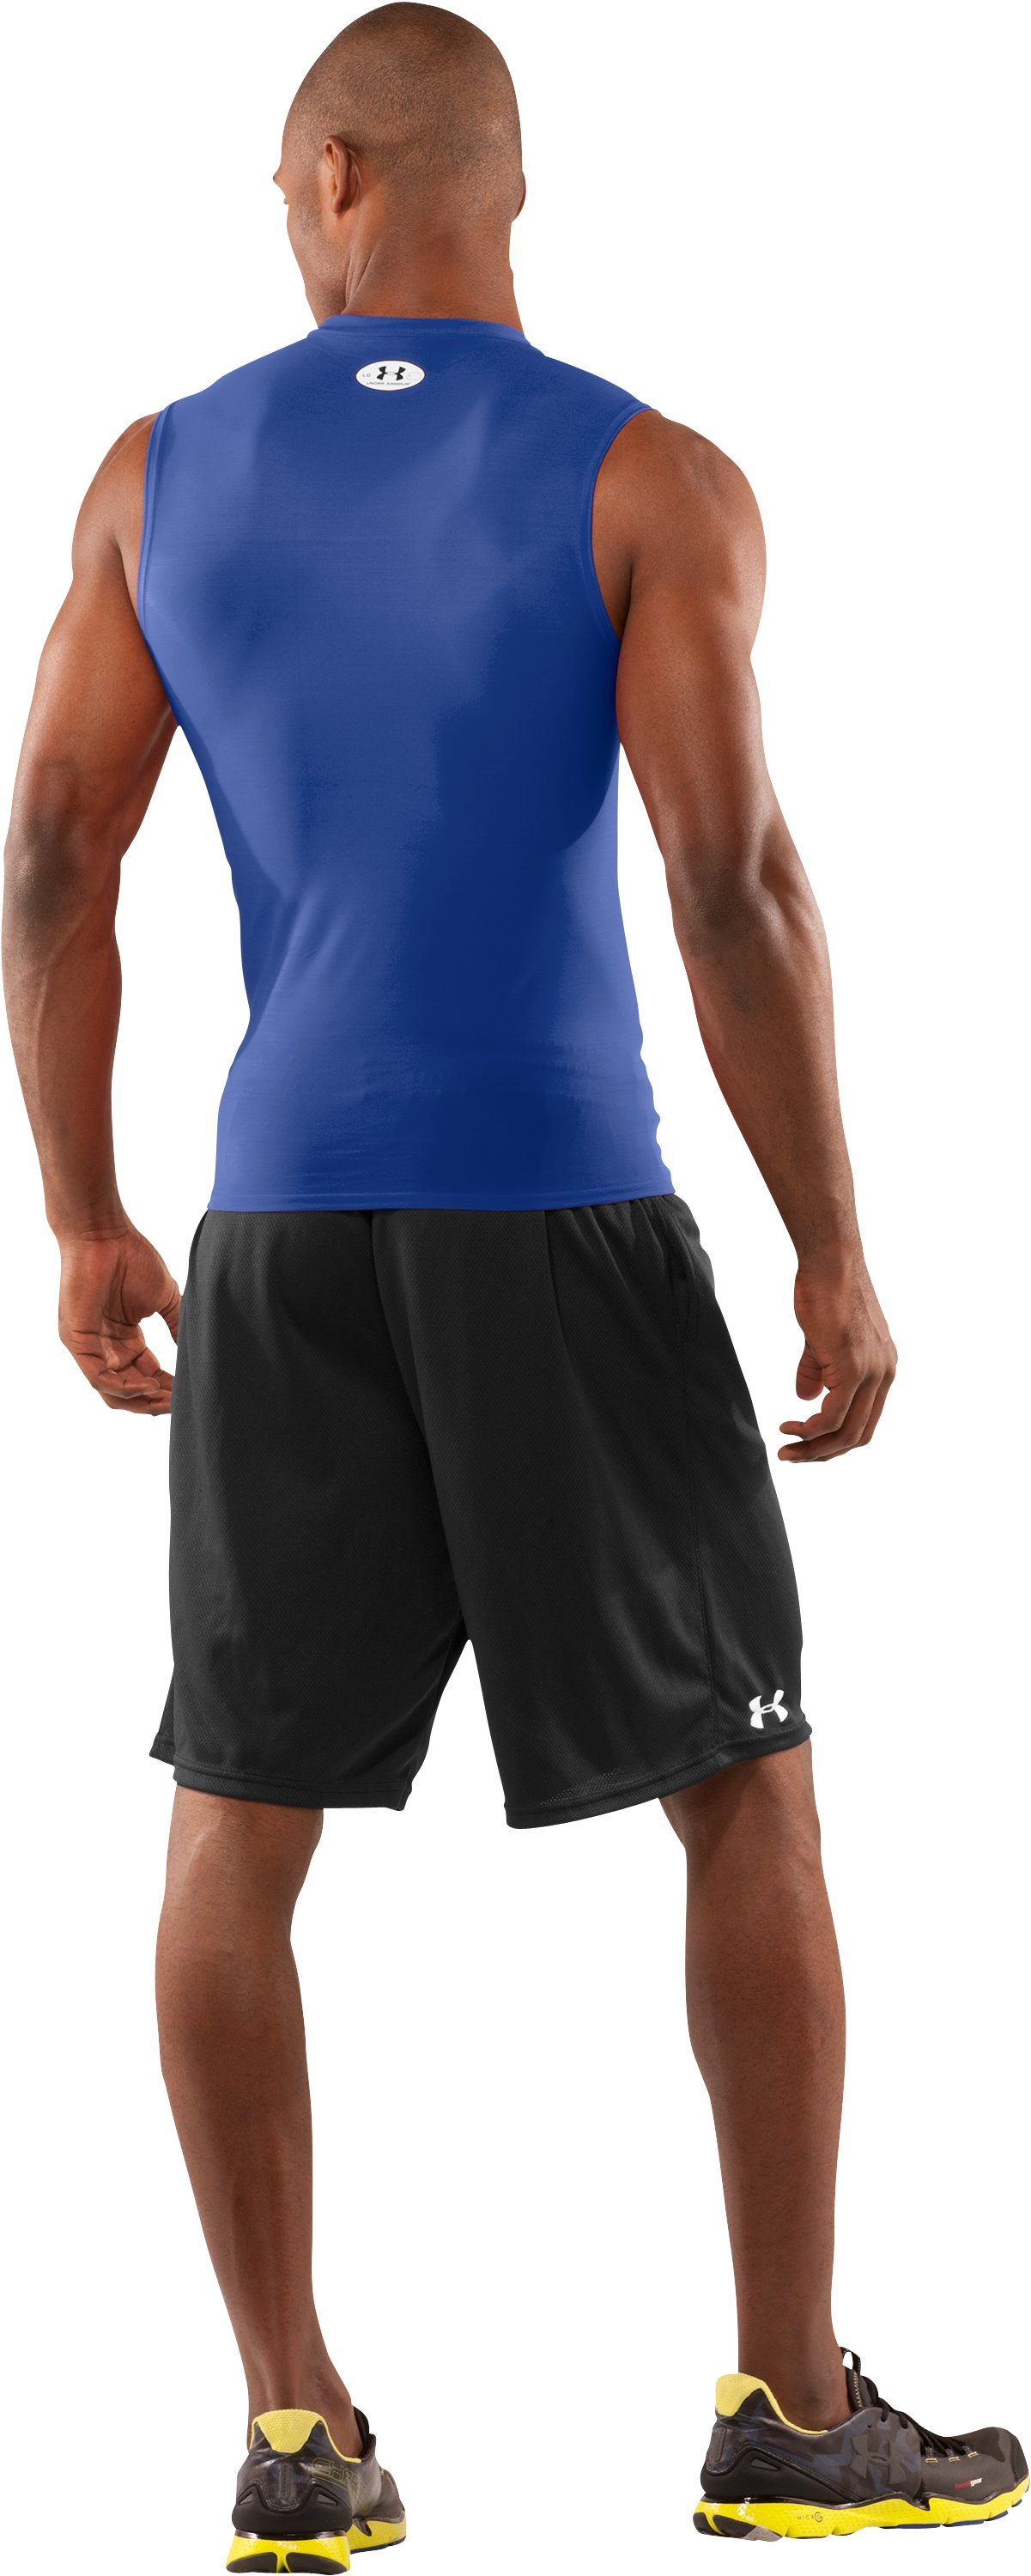 Men's HeatGear® Compression Sleeveless T-Shirt, Royal, Back